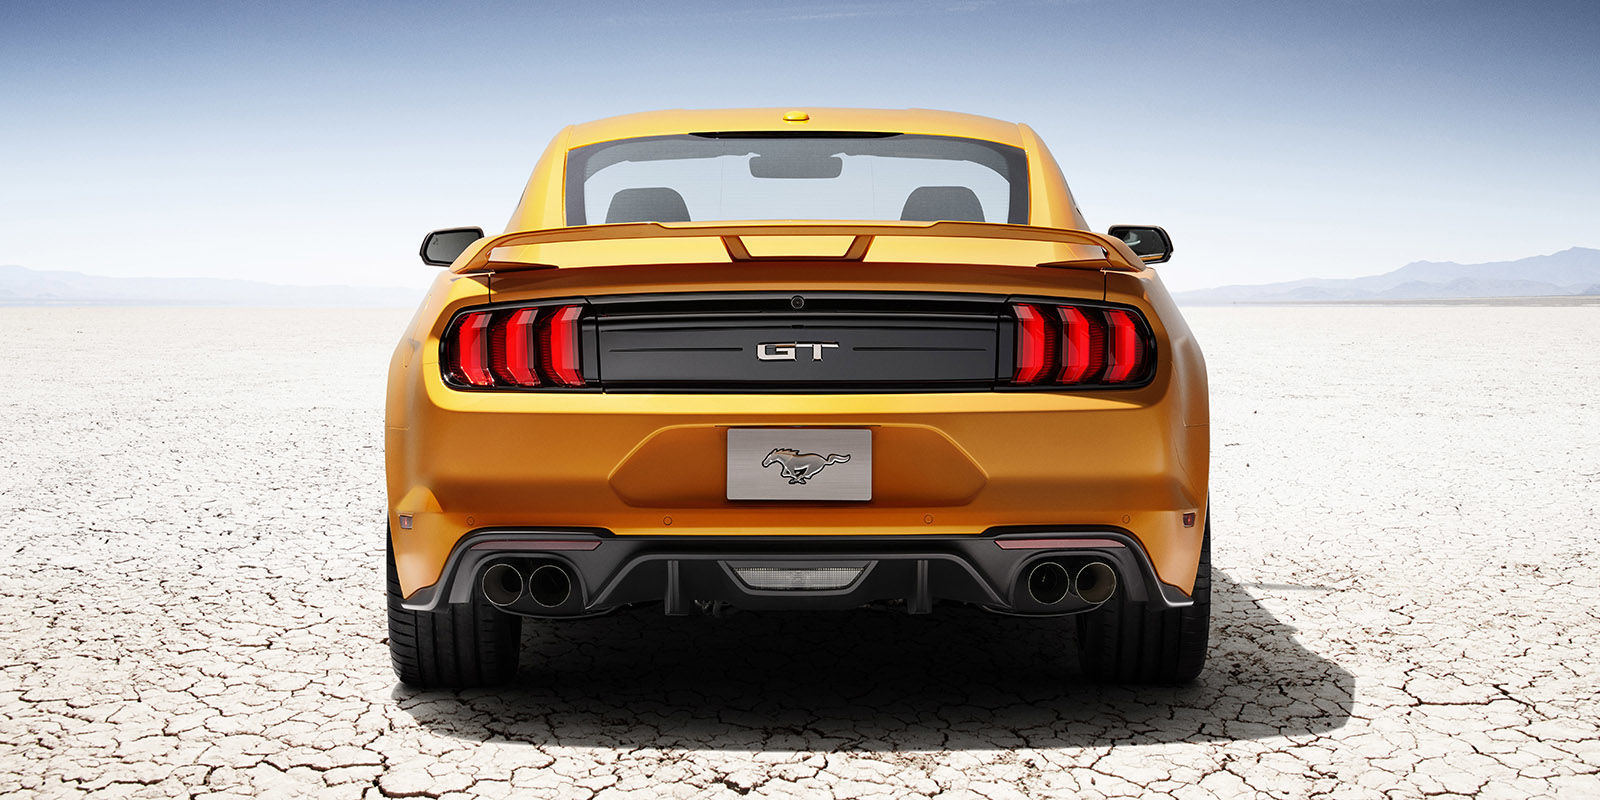 Thread 2018 ford mustang facelift officially unveiled loses the v6 gains a 10 speed auto and magneride adaptive dampers